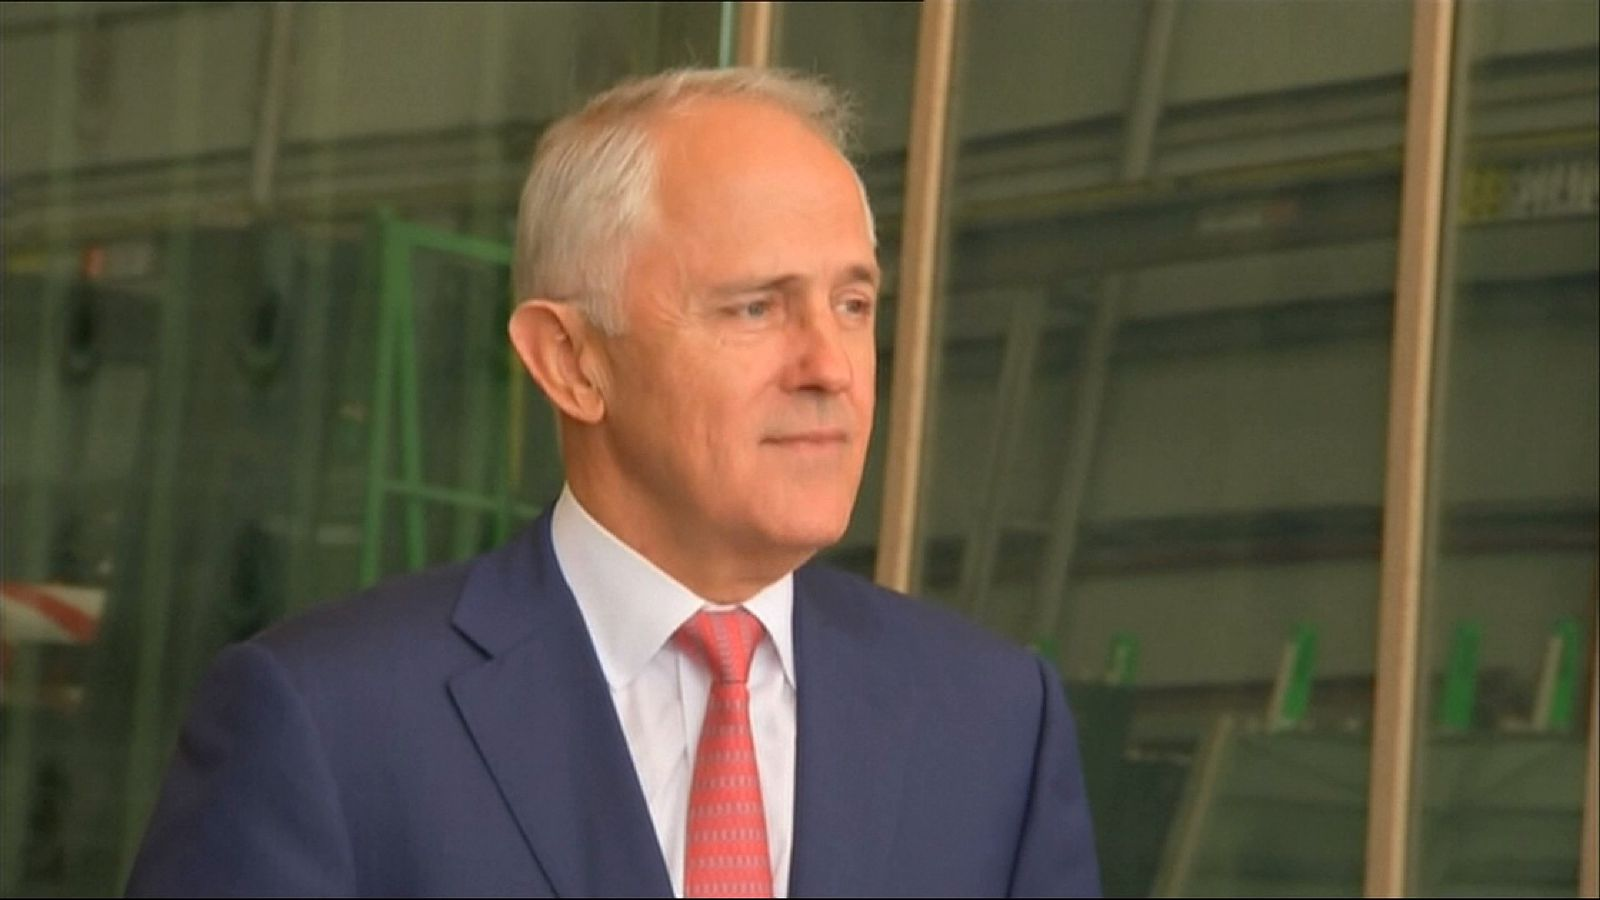 Mr Turnbull refused to go into detail about the Trump phone call